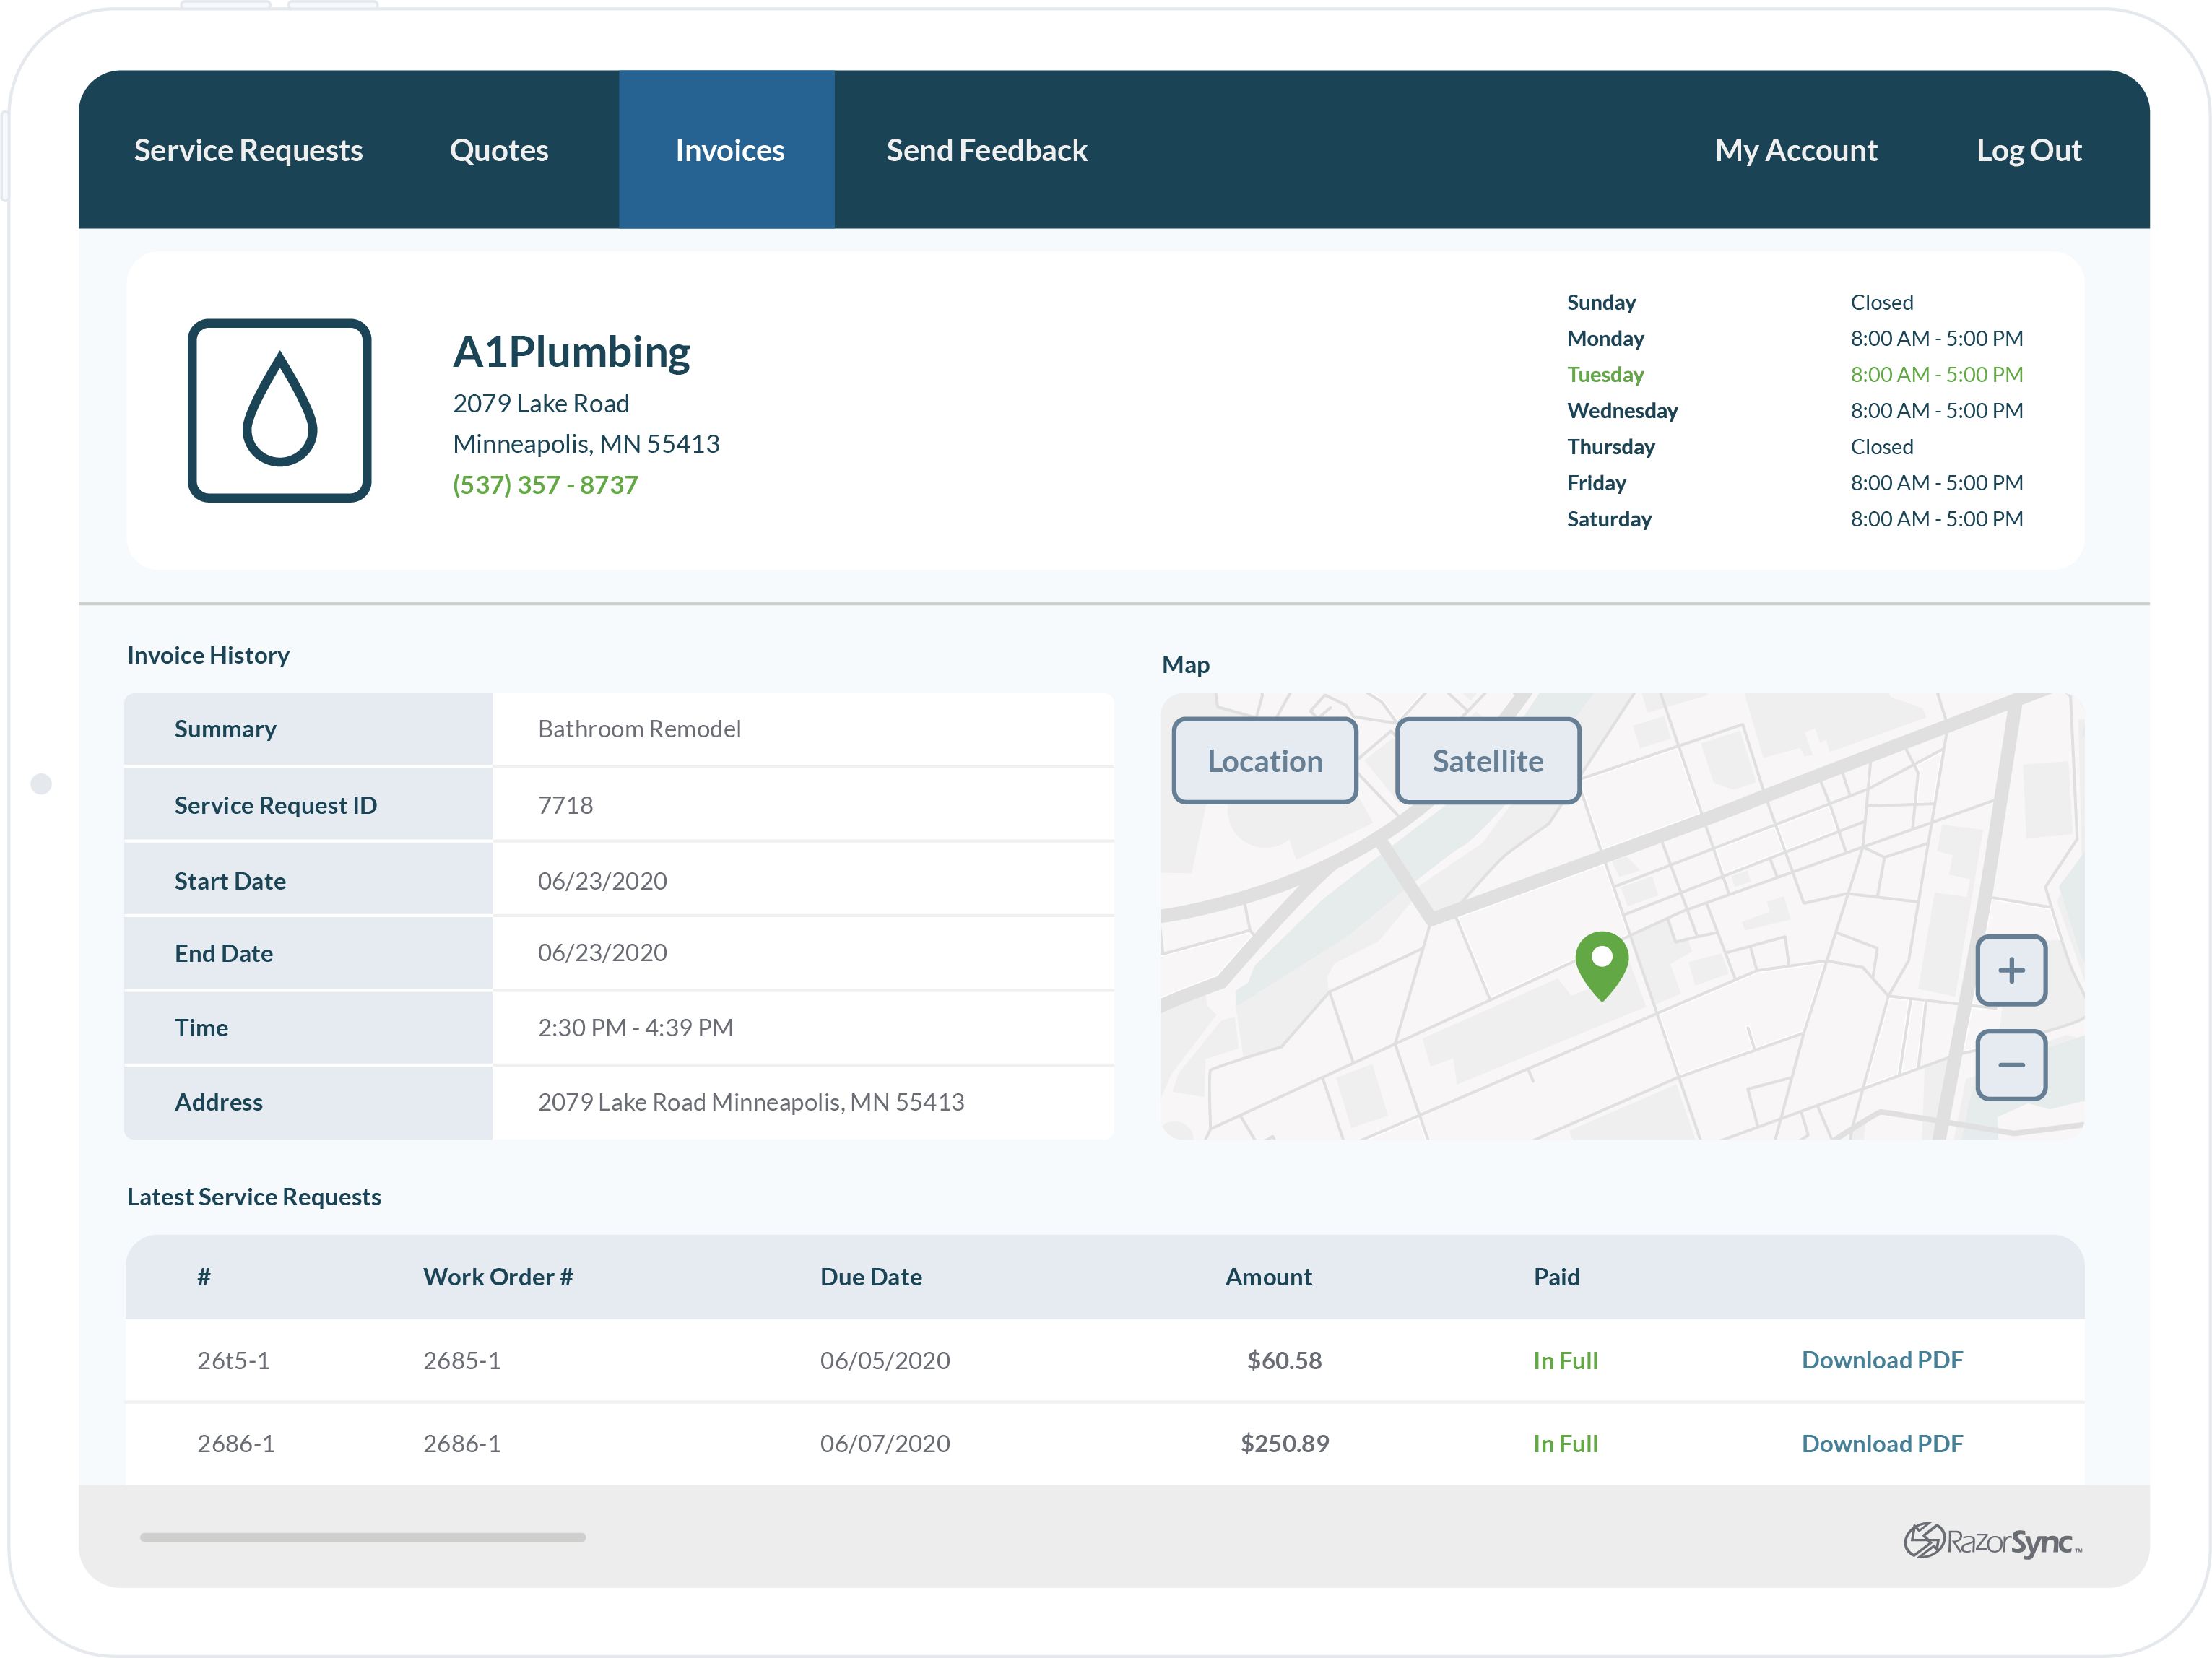 razorsync app screen company overview with map, invoice history, and service requests